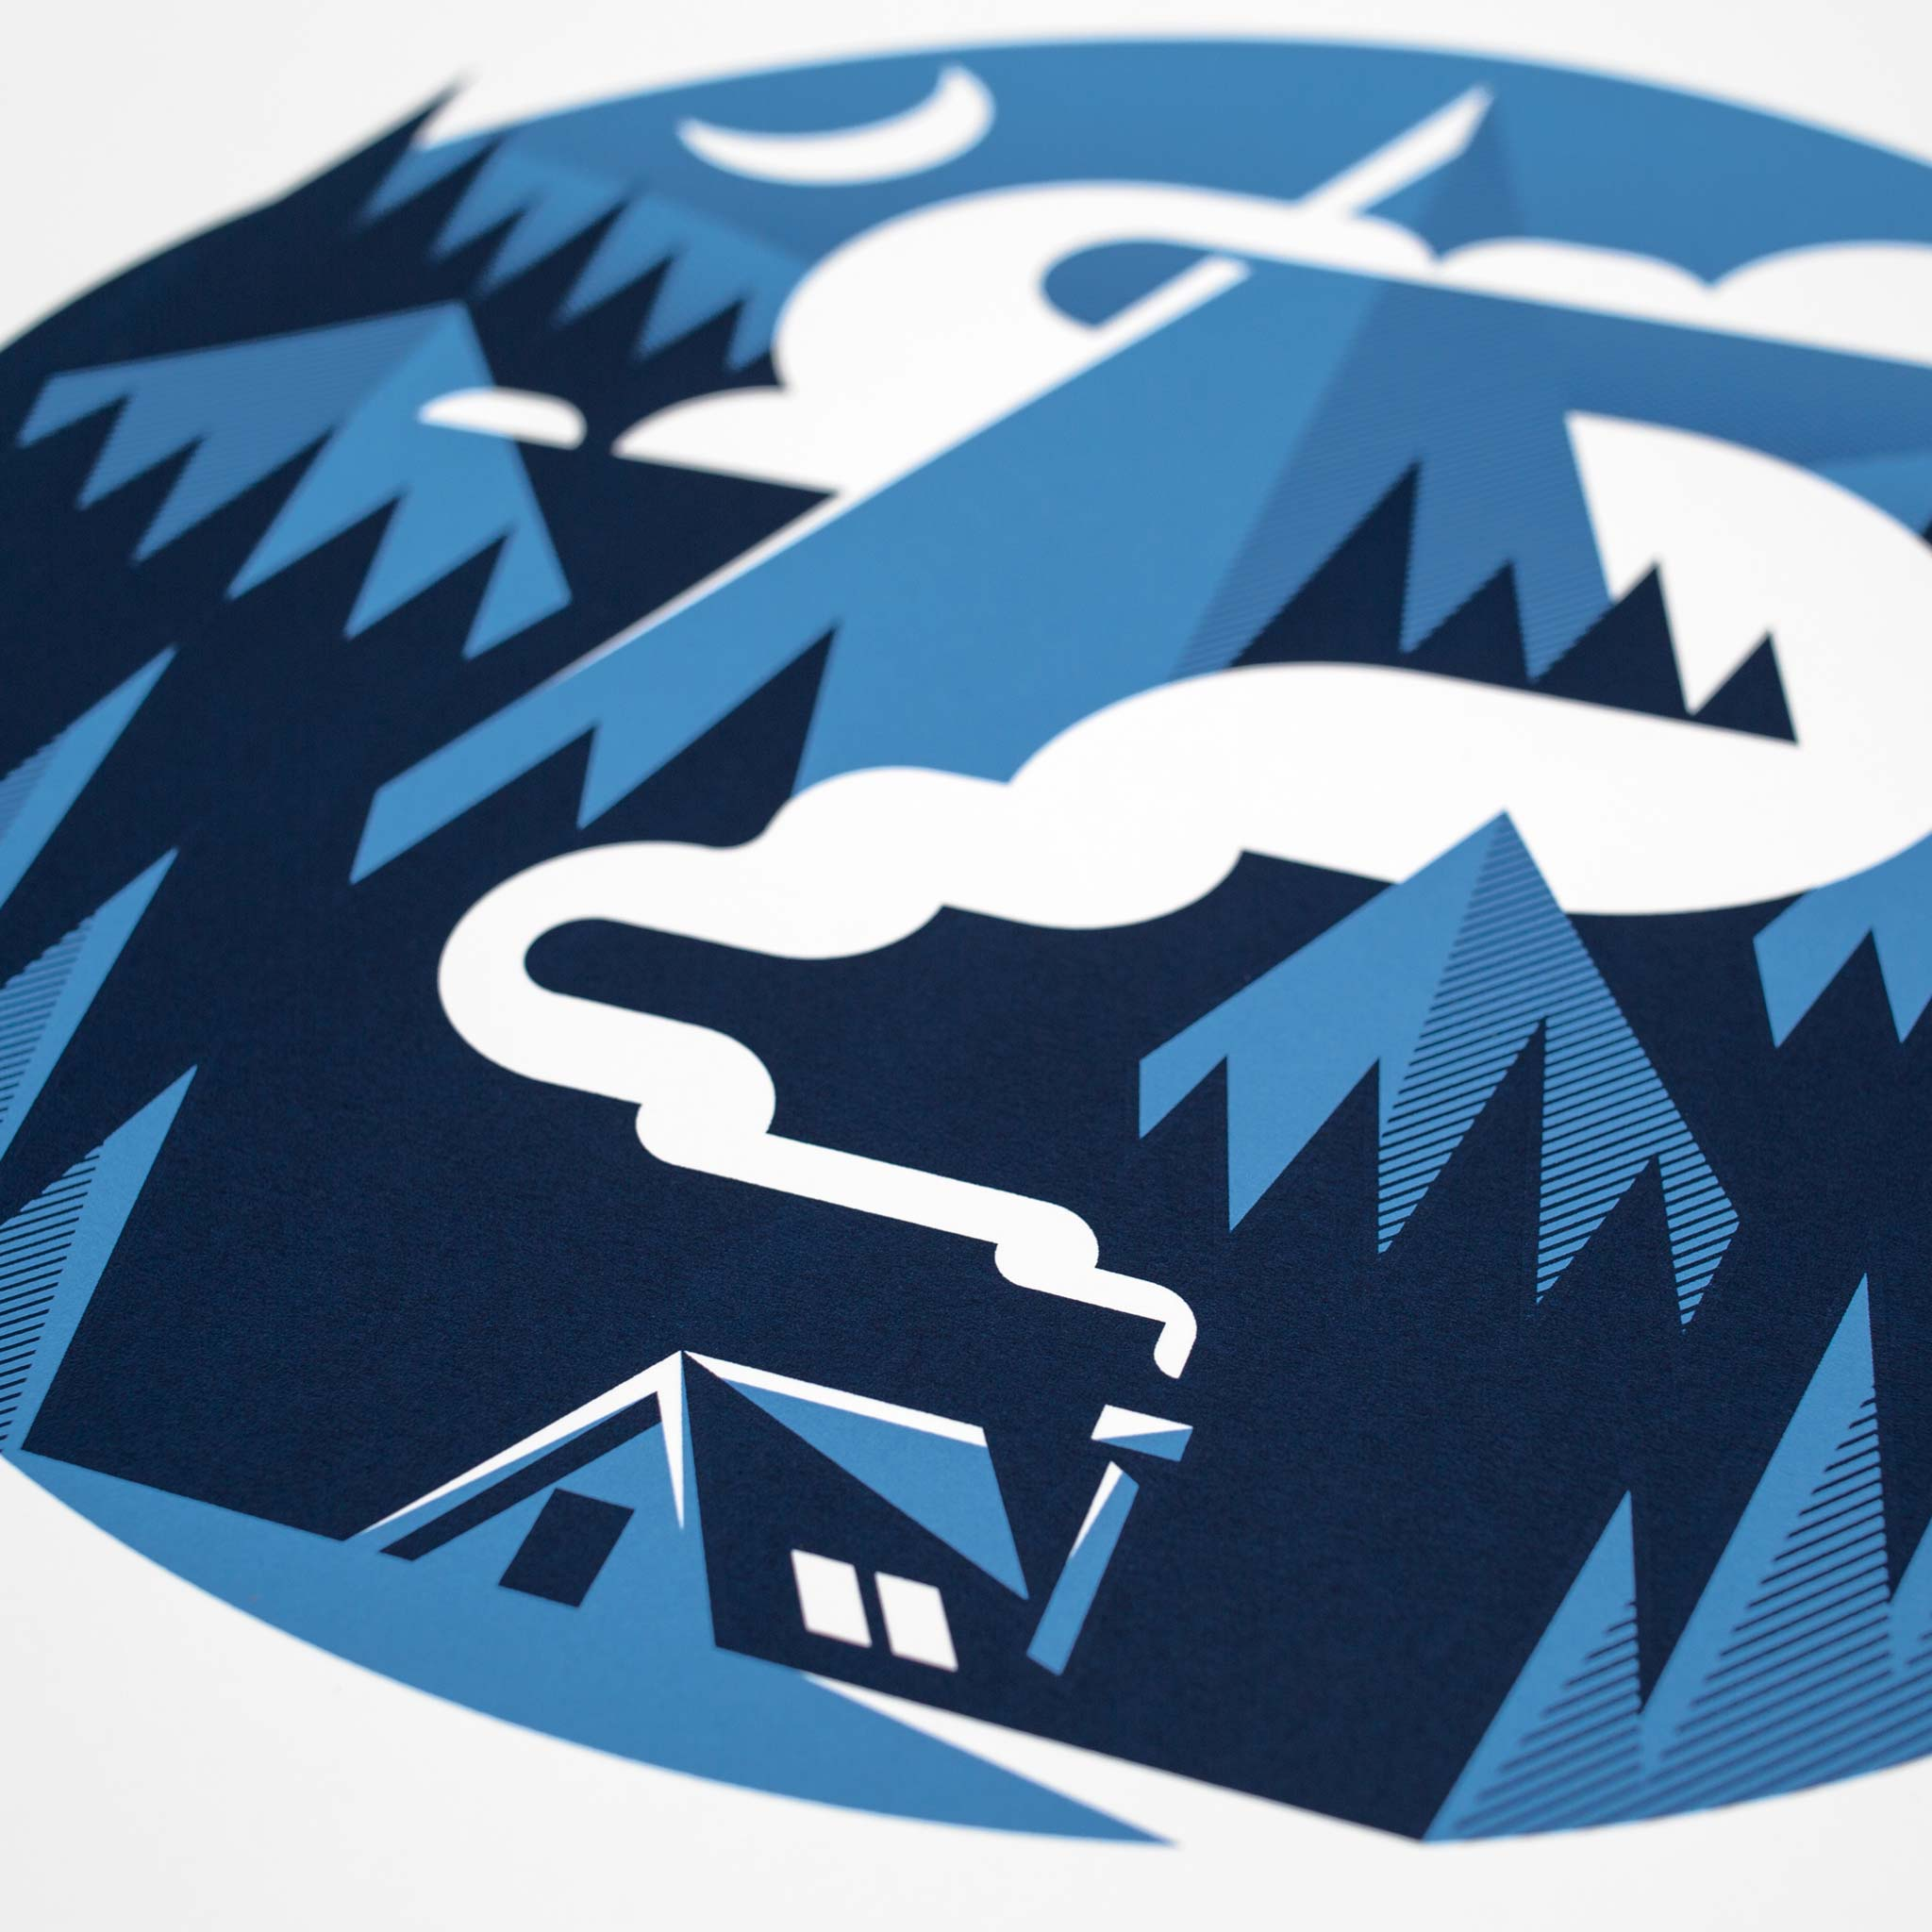 Hideaway Screen Print by Dan Forster created for The Lost Fox